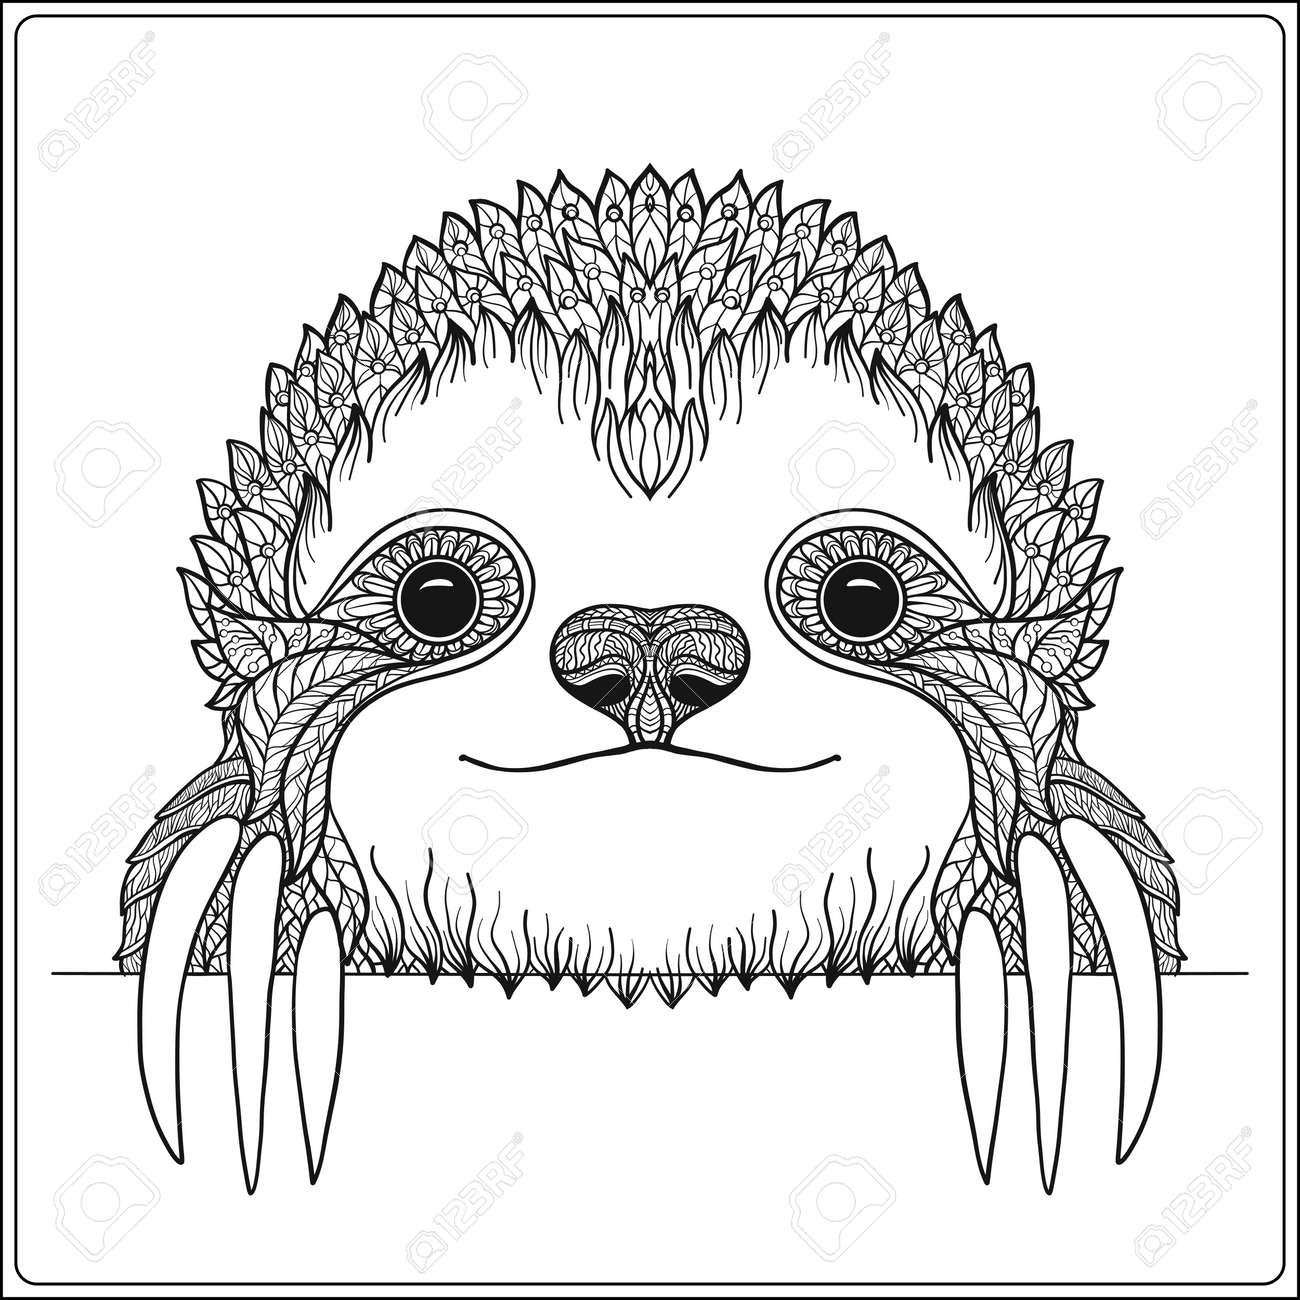 Decorative cute sloch. Outline vector illustration. Coloring book for adult and older children. Outline drawing coloring page. - 60500488